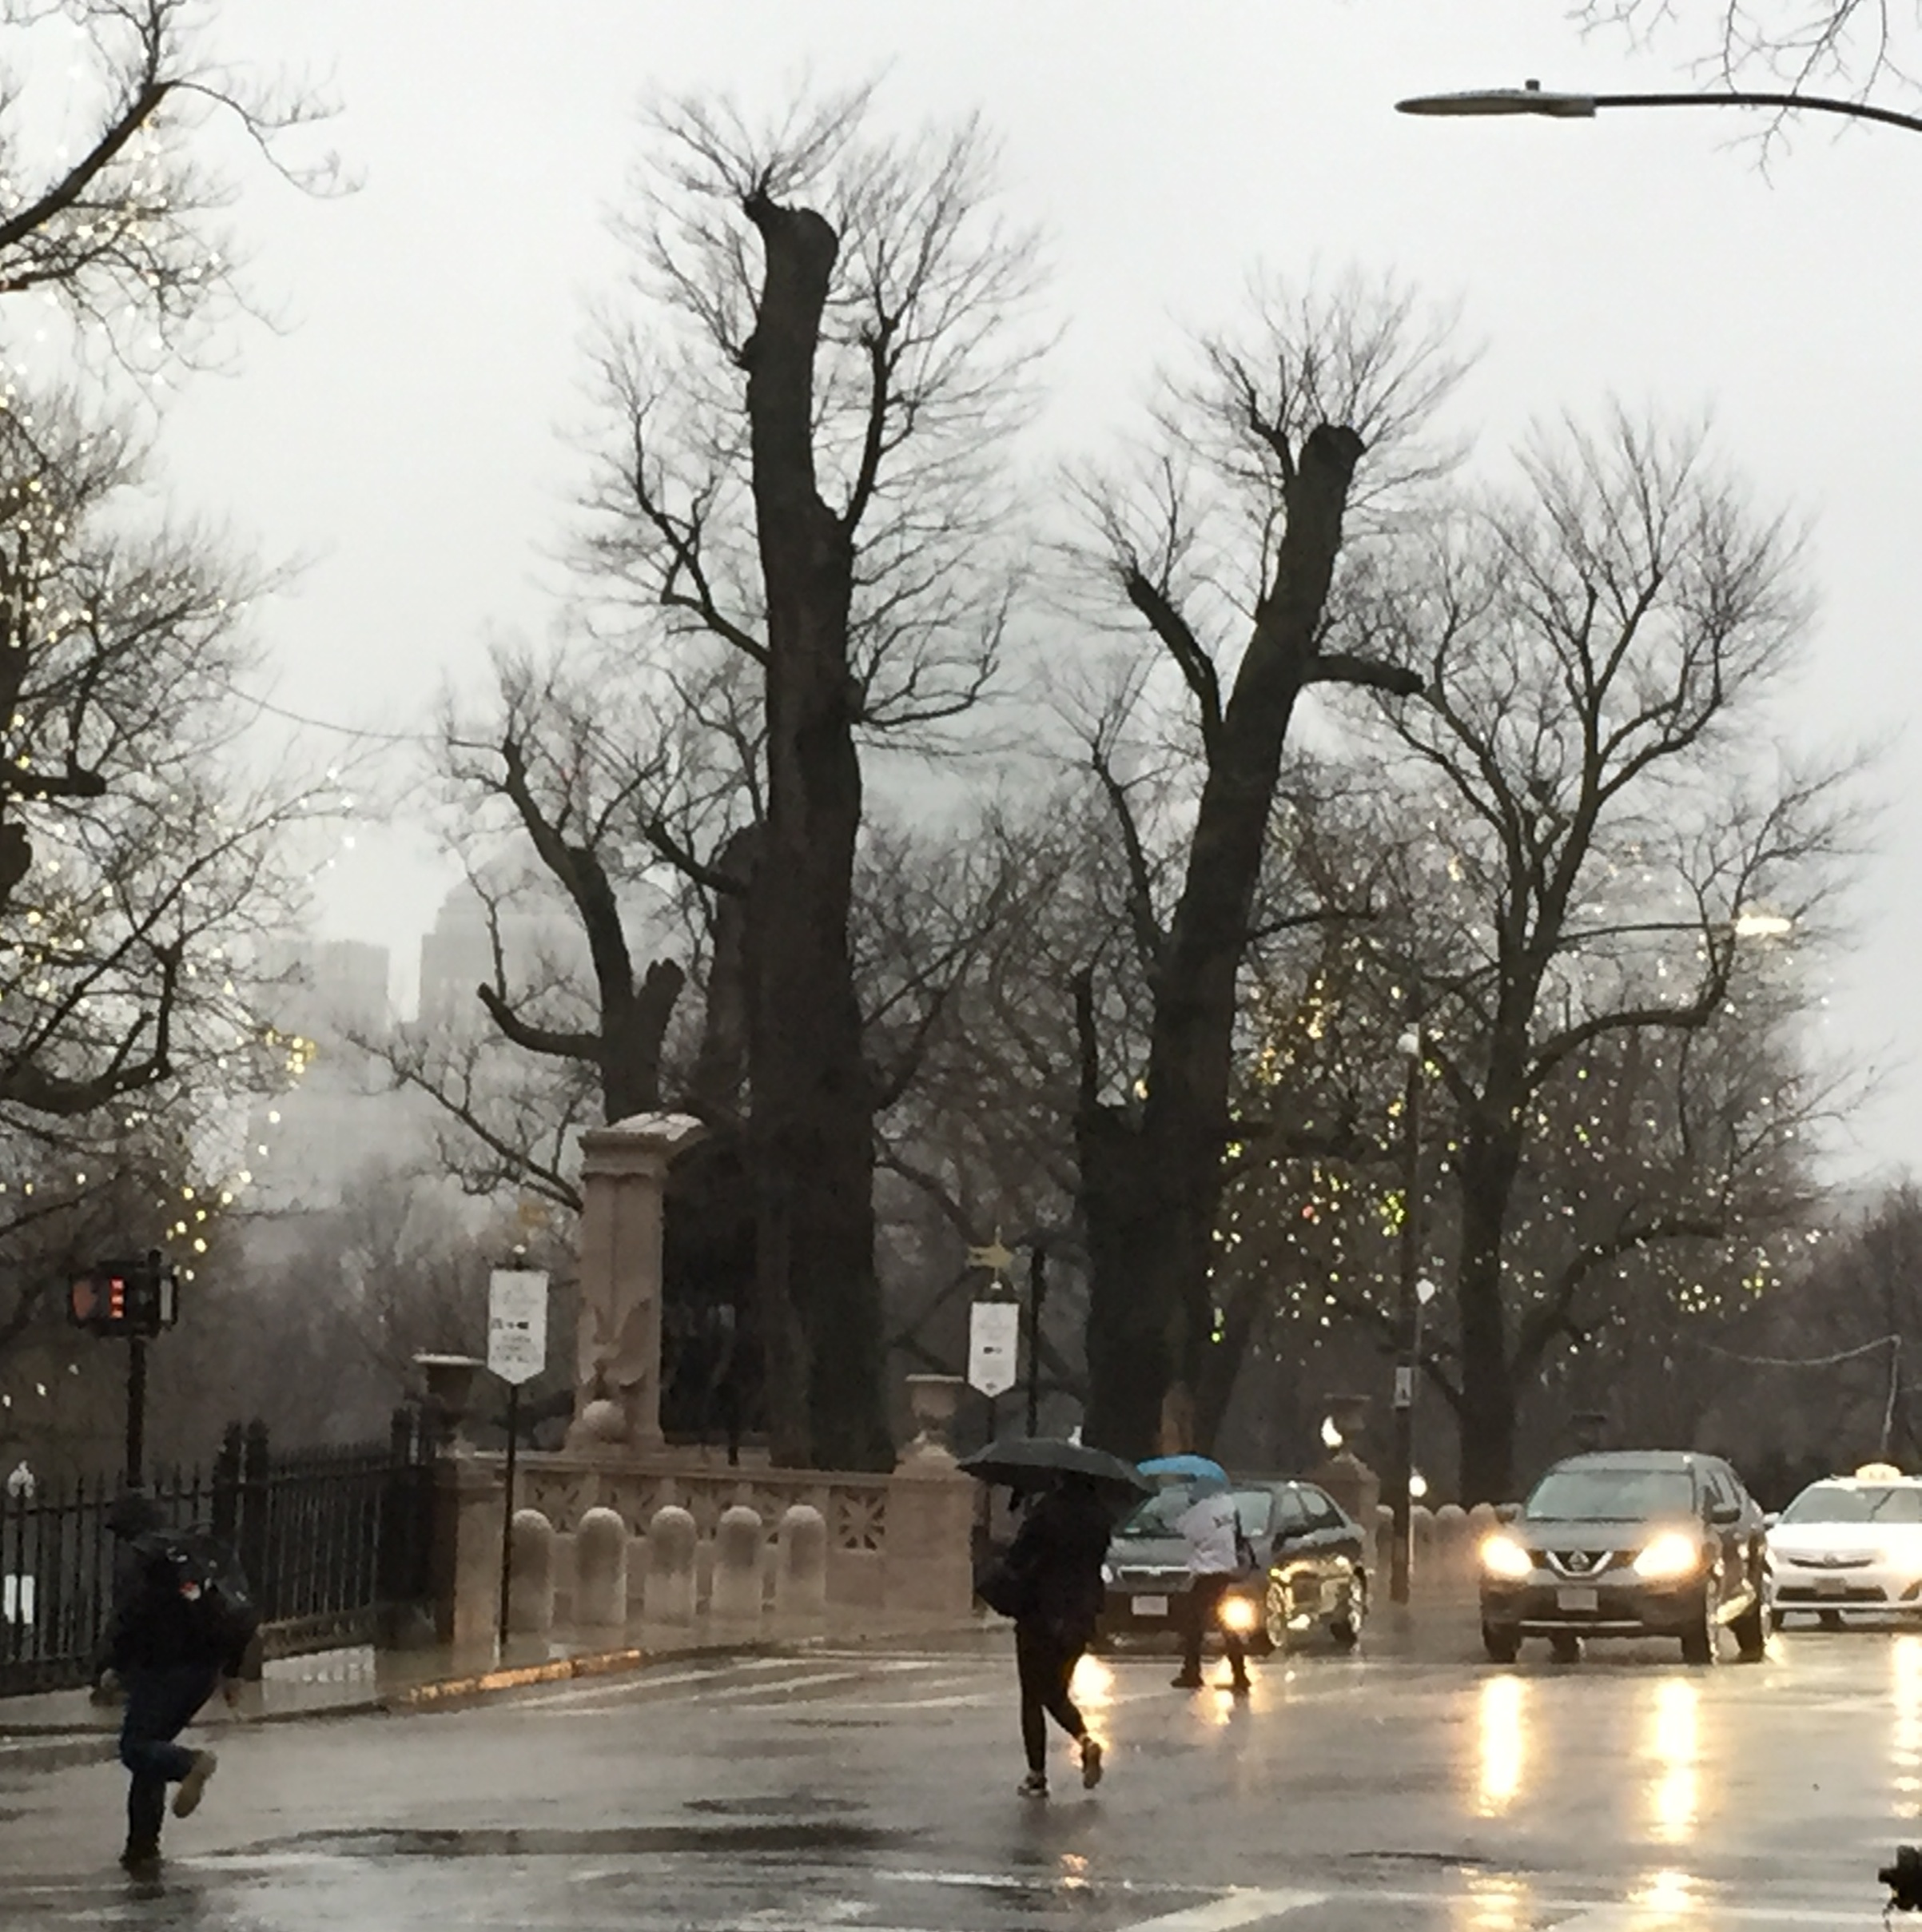 oldest trees on boston common taking place in the trees